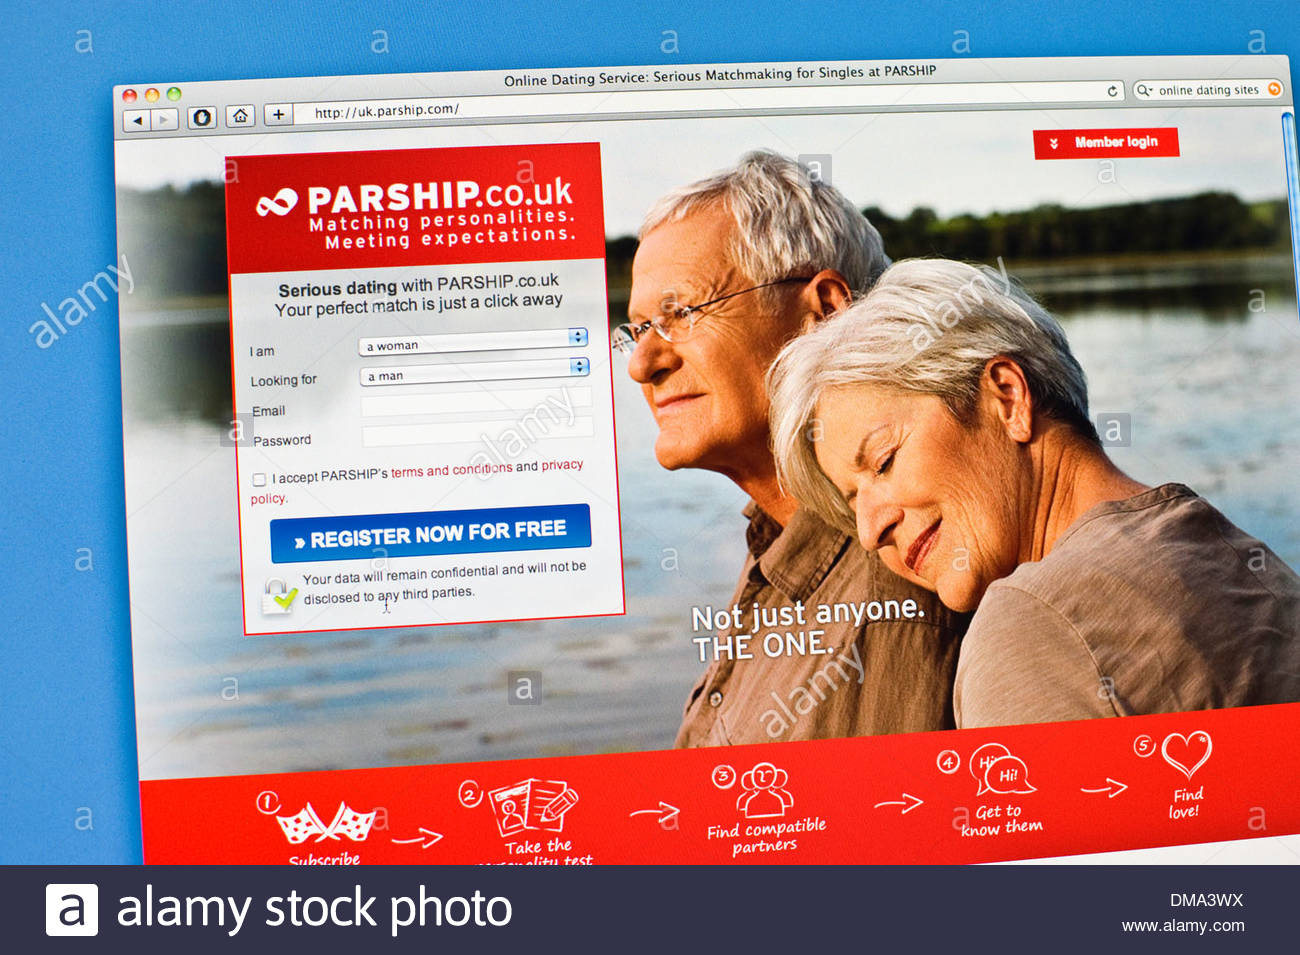 parship dating site